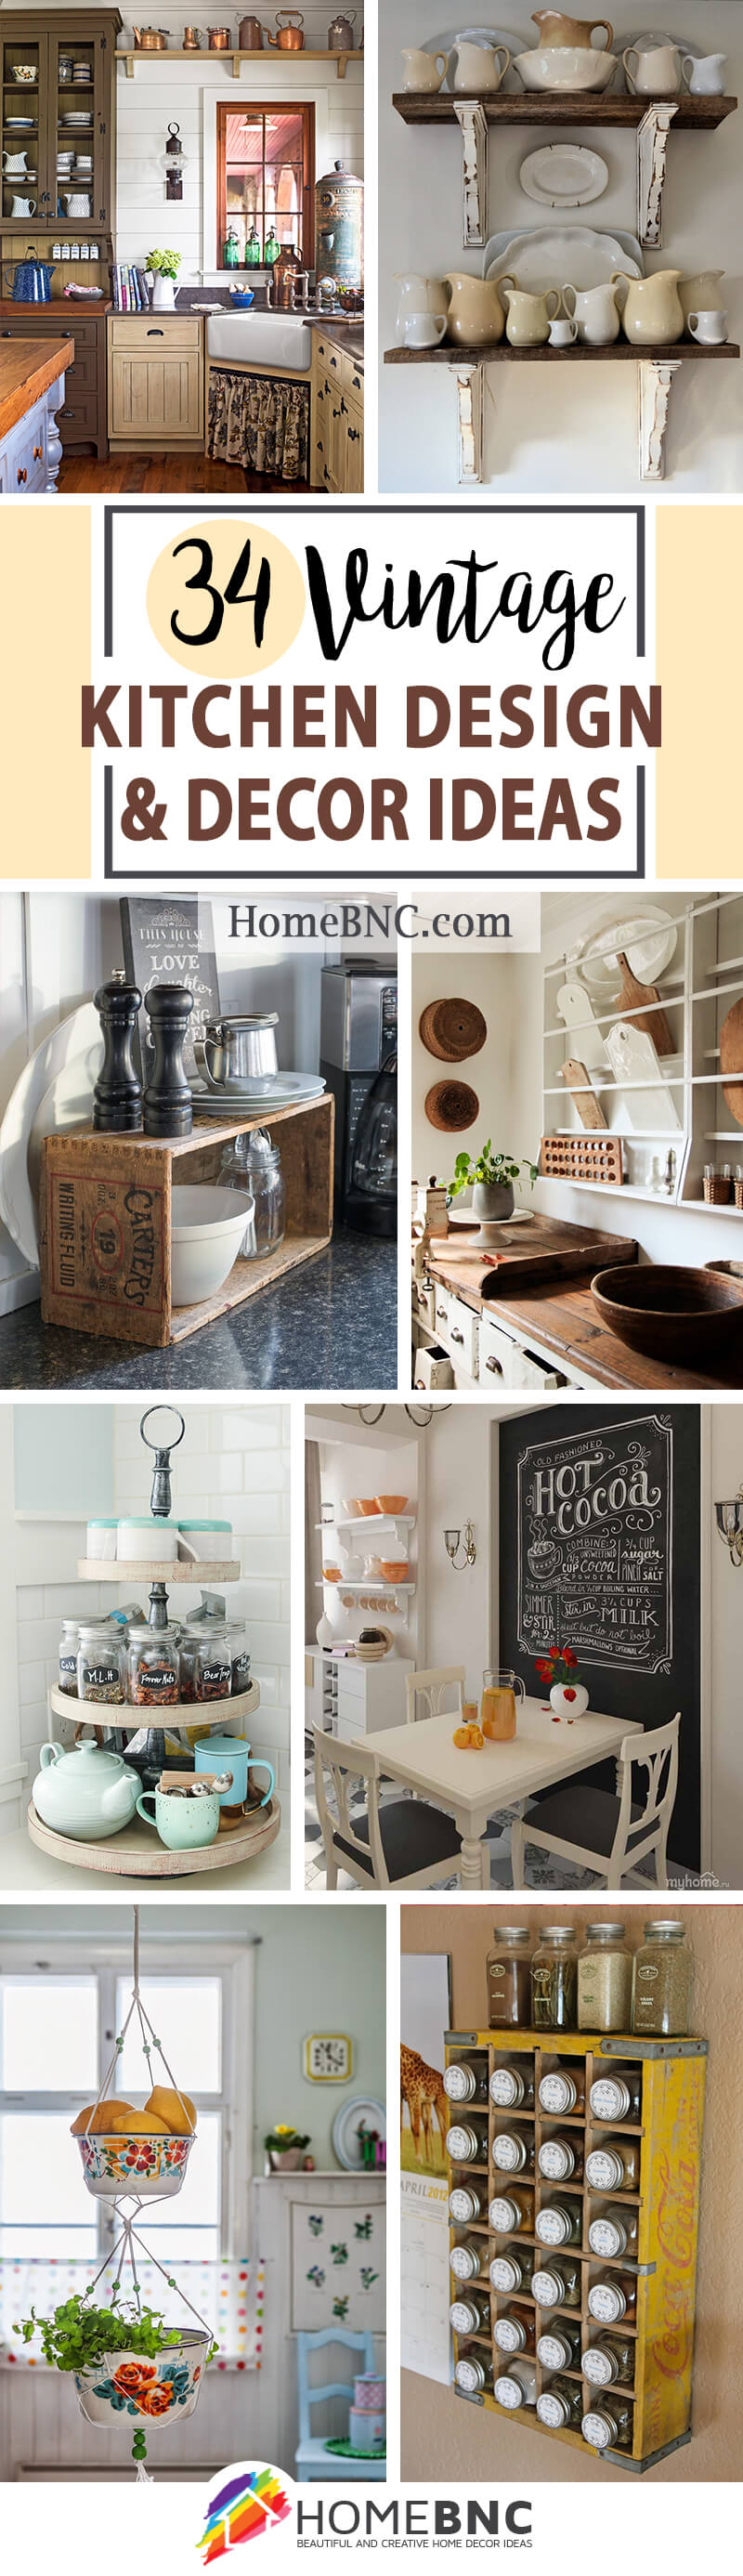 Superior Vintage Kitchen Design Ideas